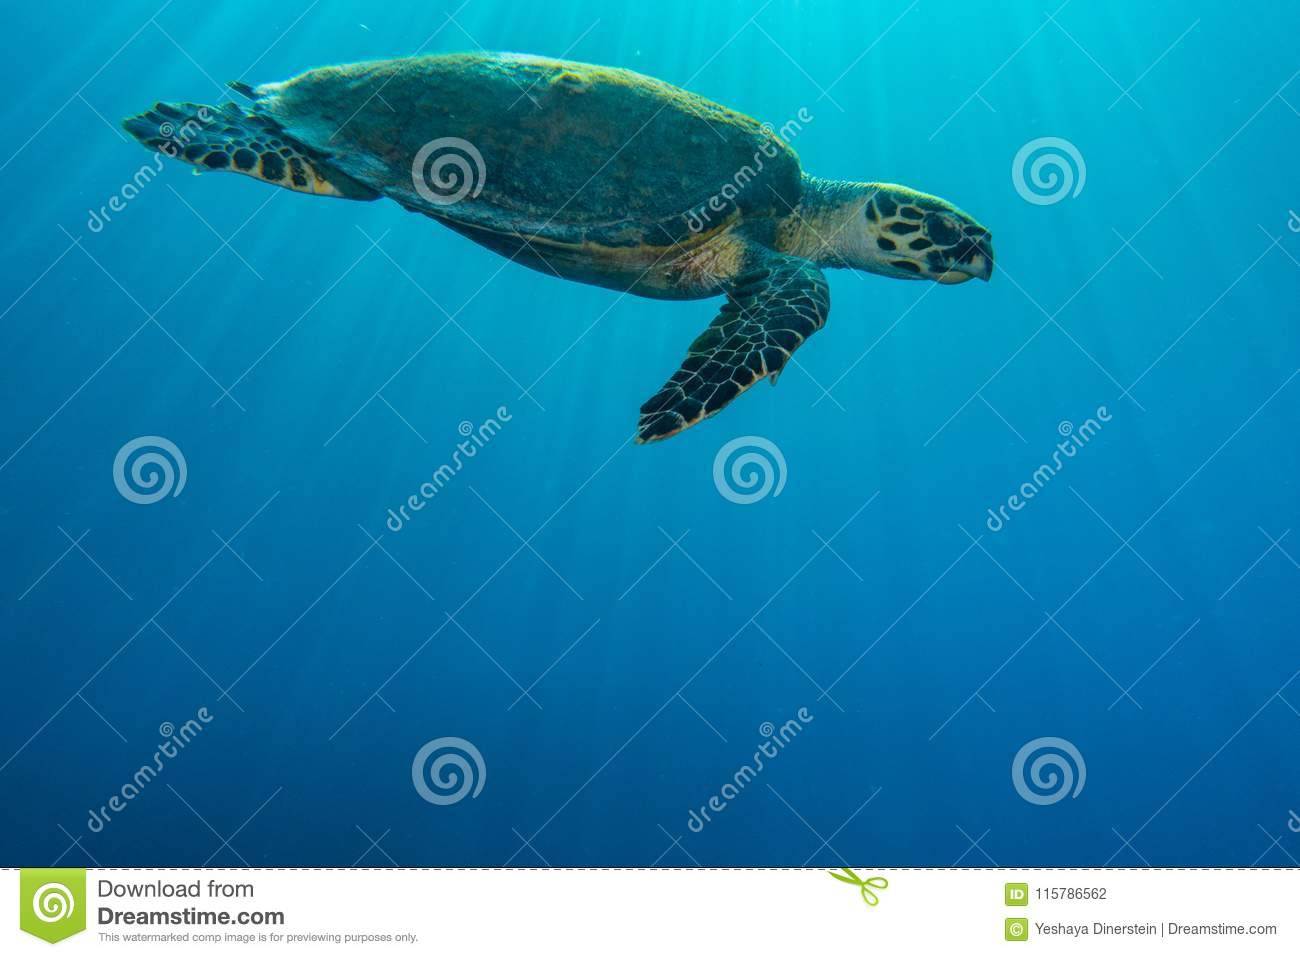 Giant Green Sea Turtles in the Red Sea, eilat israel a.e